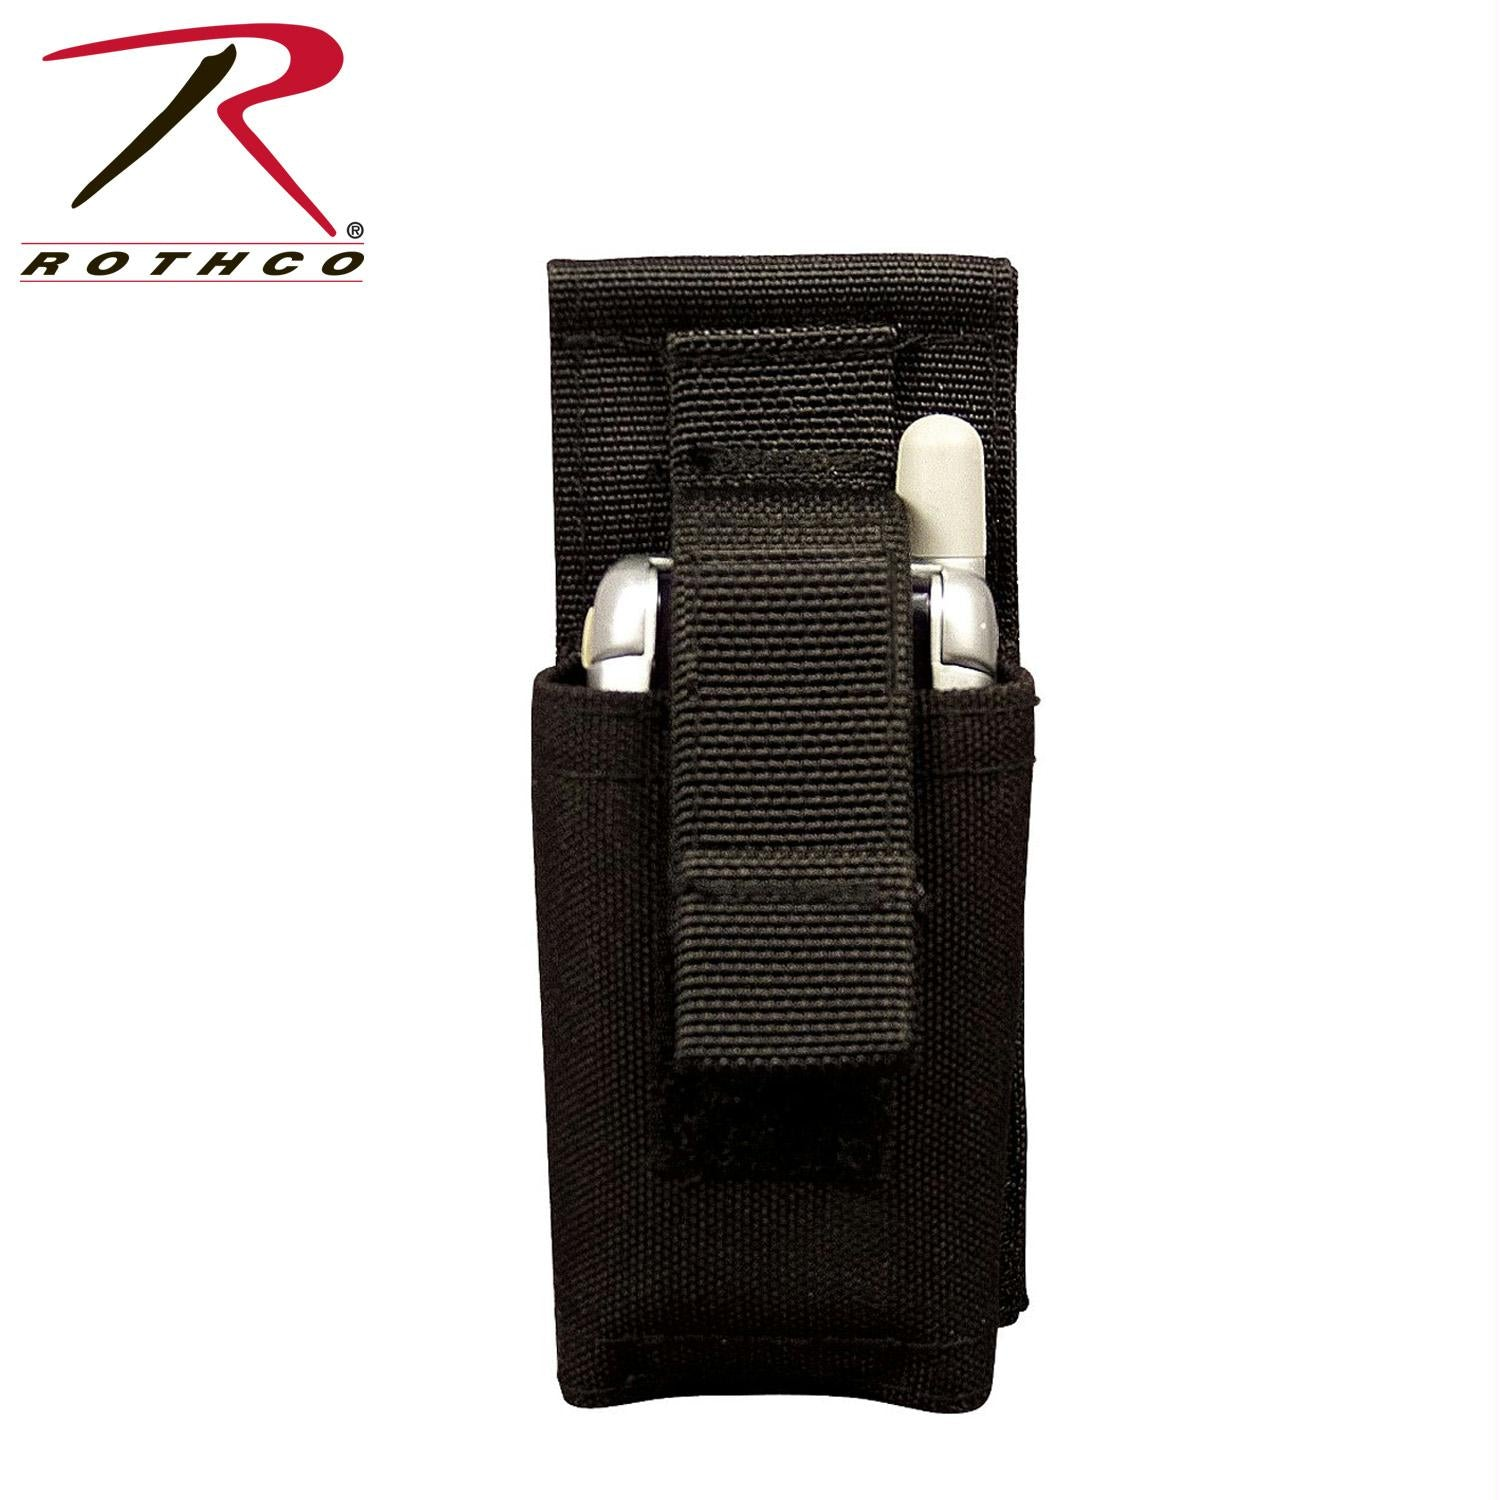 Rothco Universal Tactical Cell Phone Holder